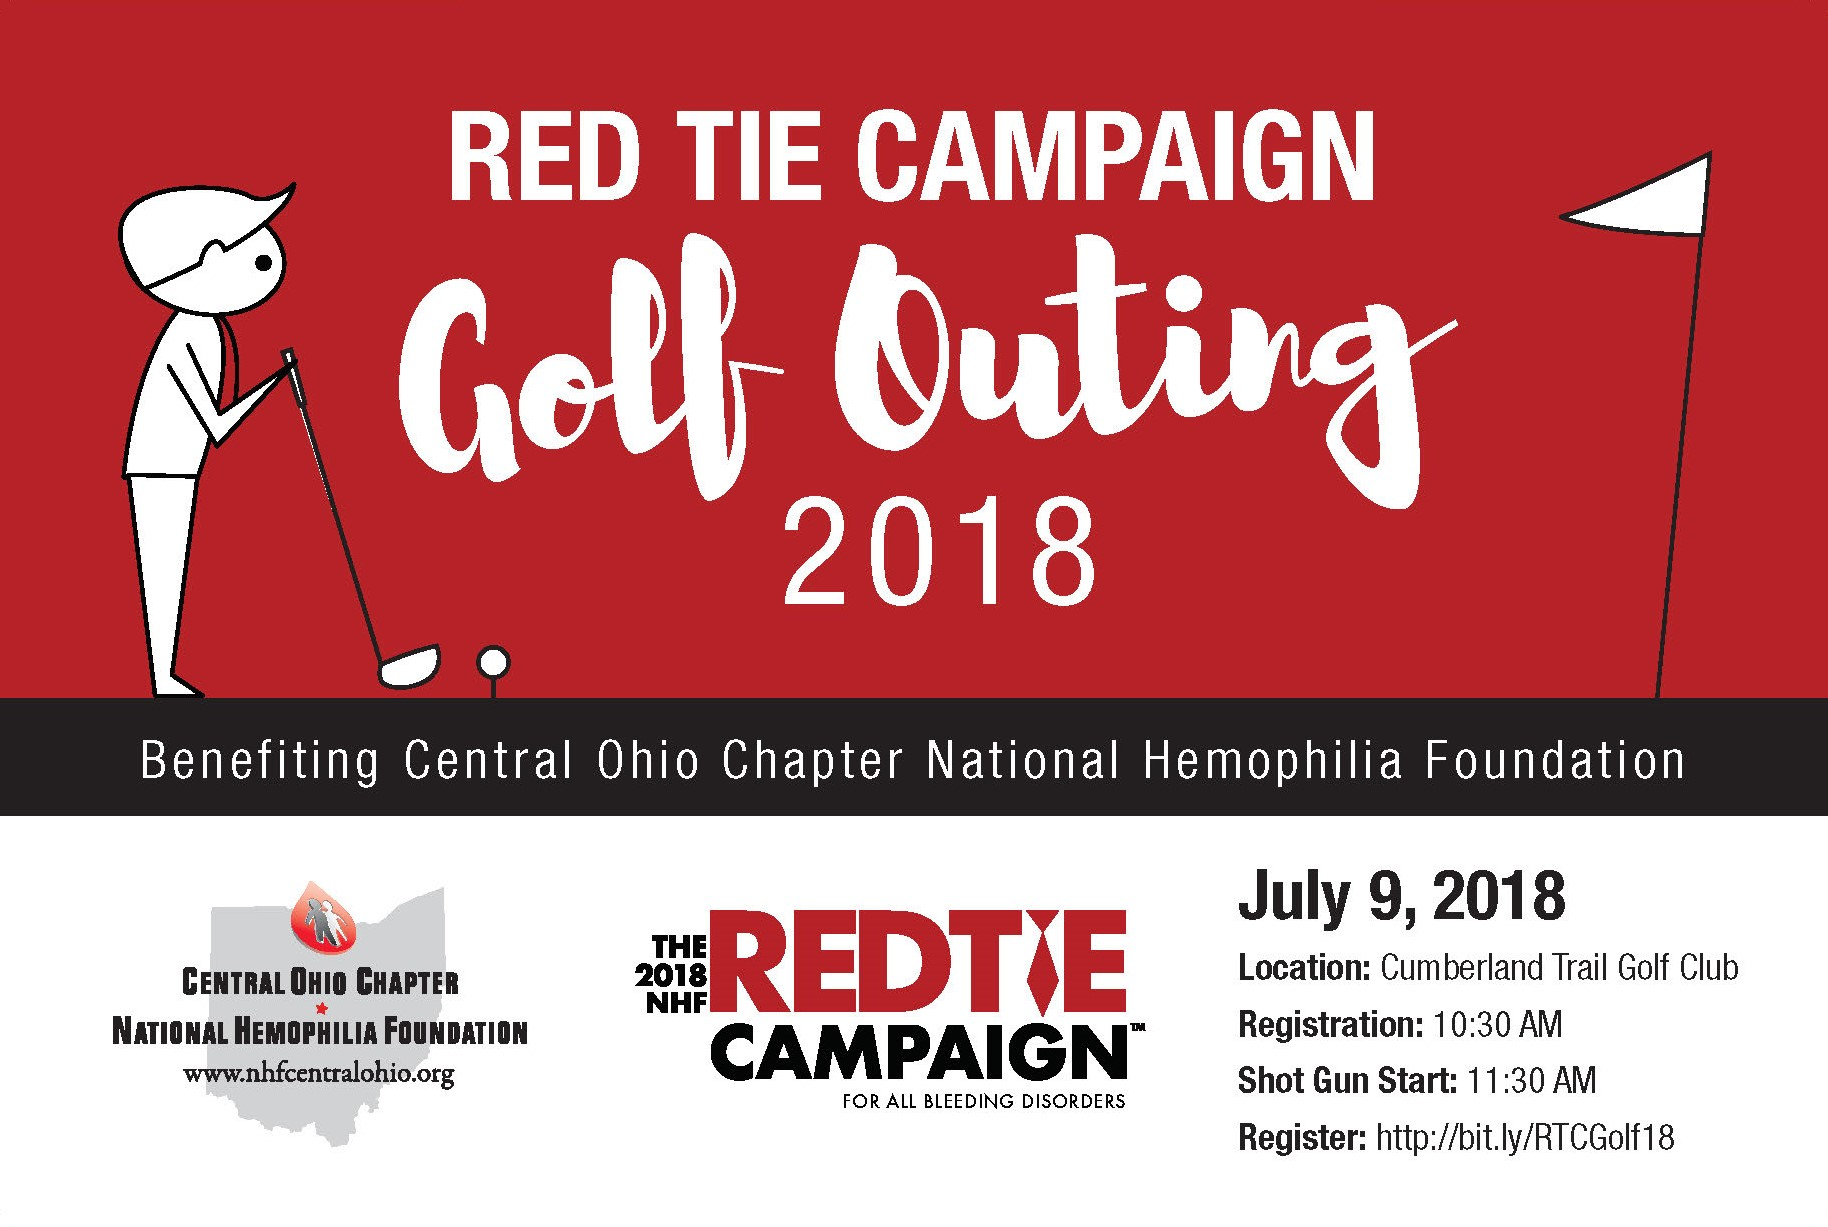 Red Tie Campaign Golf Outing